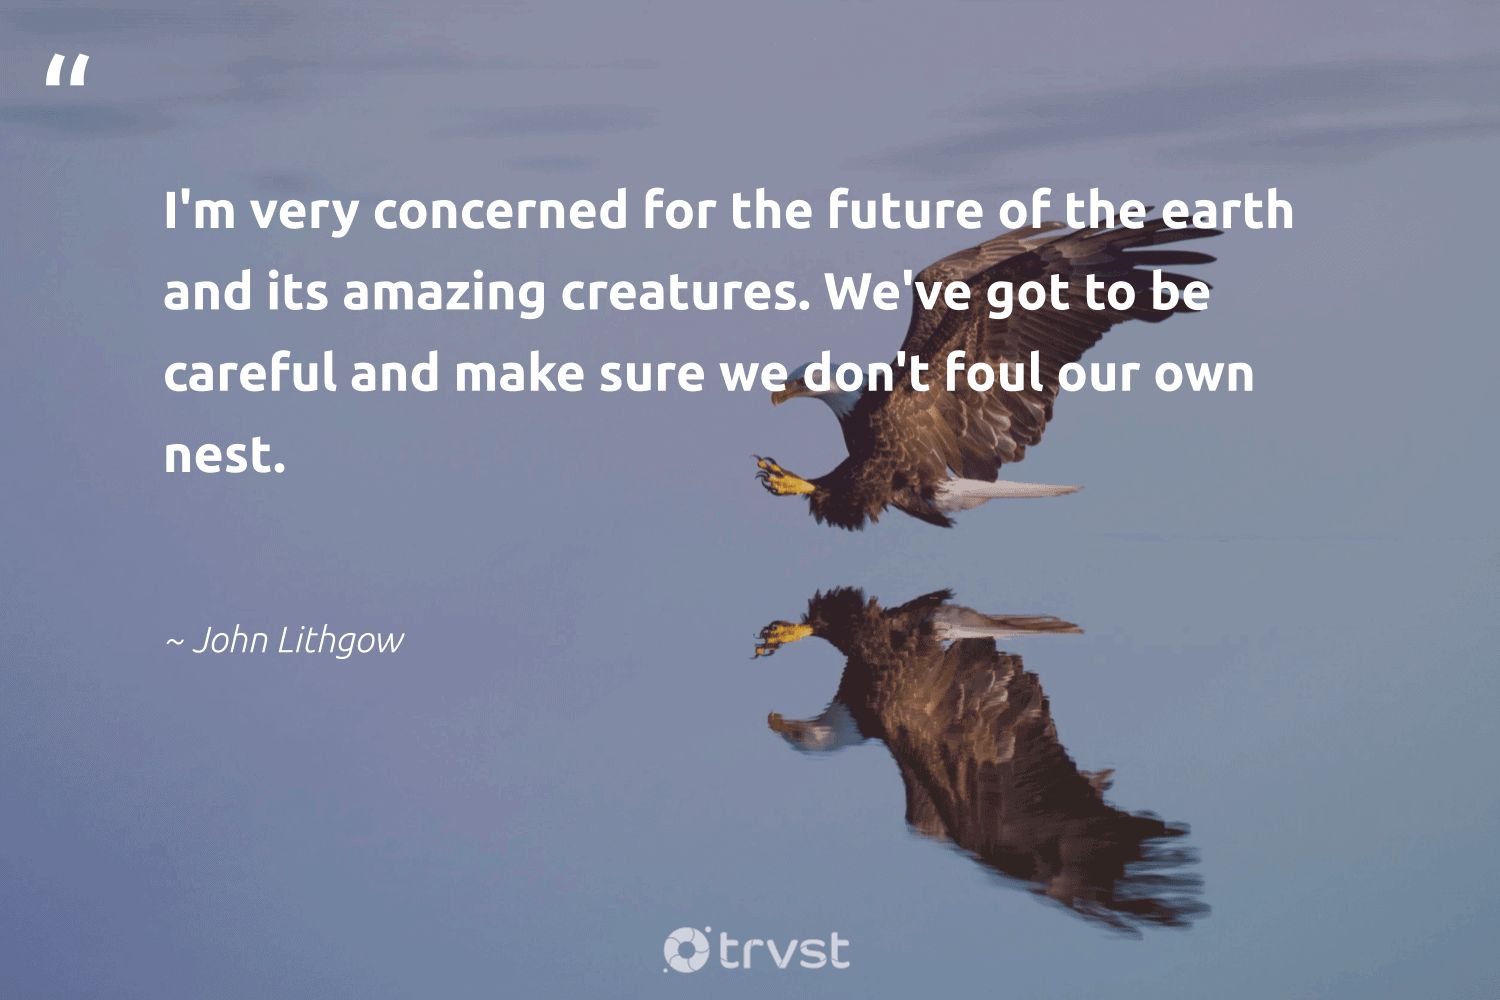 """""""I'm very concerned for the future of the earth and its amazing creatures. We've got to be careful and make sure we don't foul our own nest.""""  - John Lithgow #trvst #quotes #earth #mothernature #science #eco #takeaction #nature #birds #natureseekers #thinkgreen #conservation"""